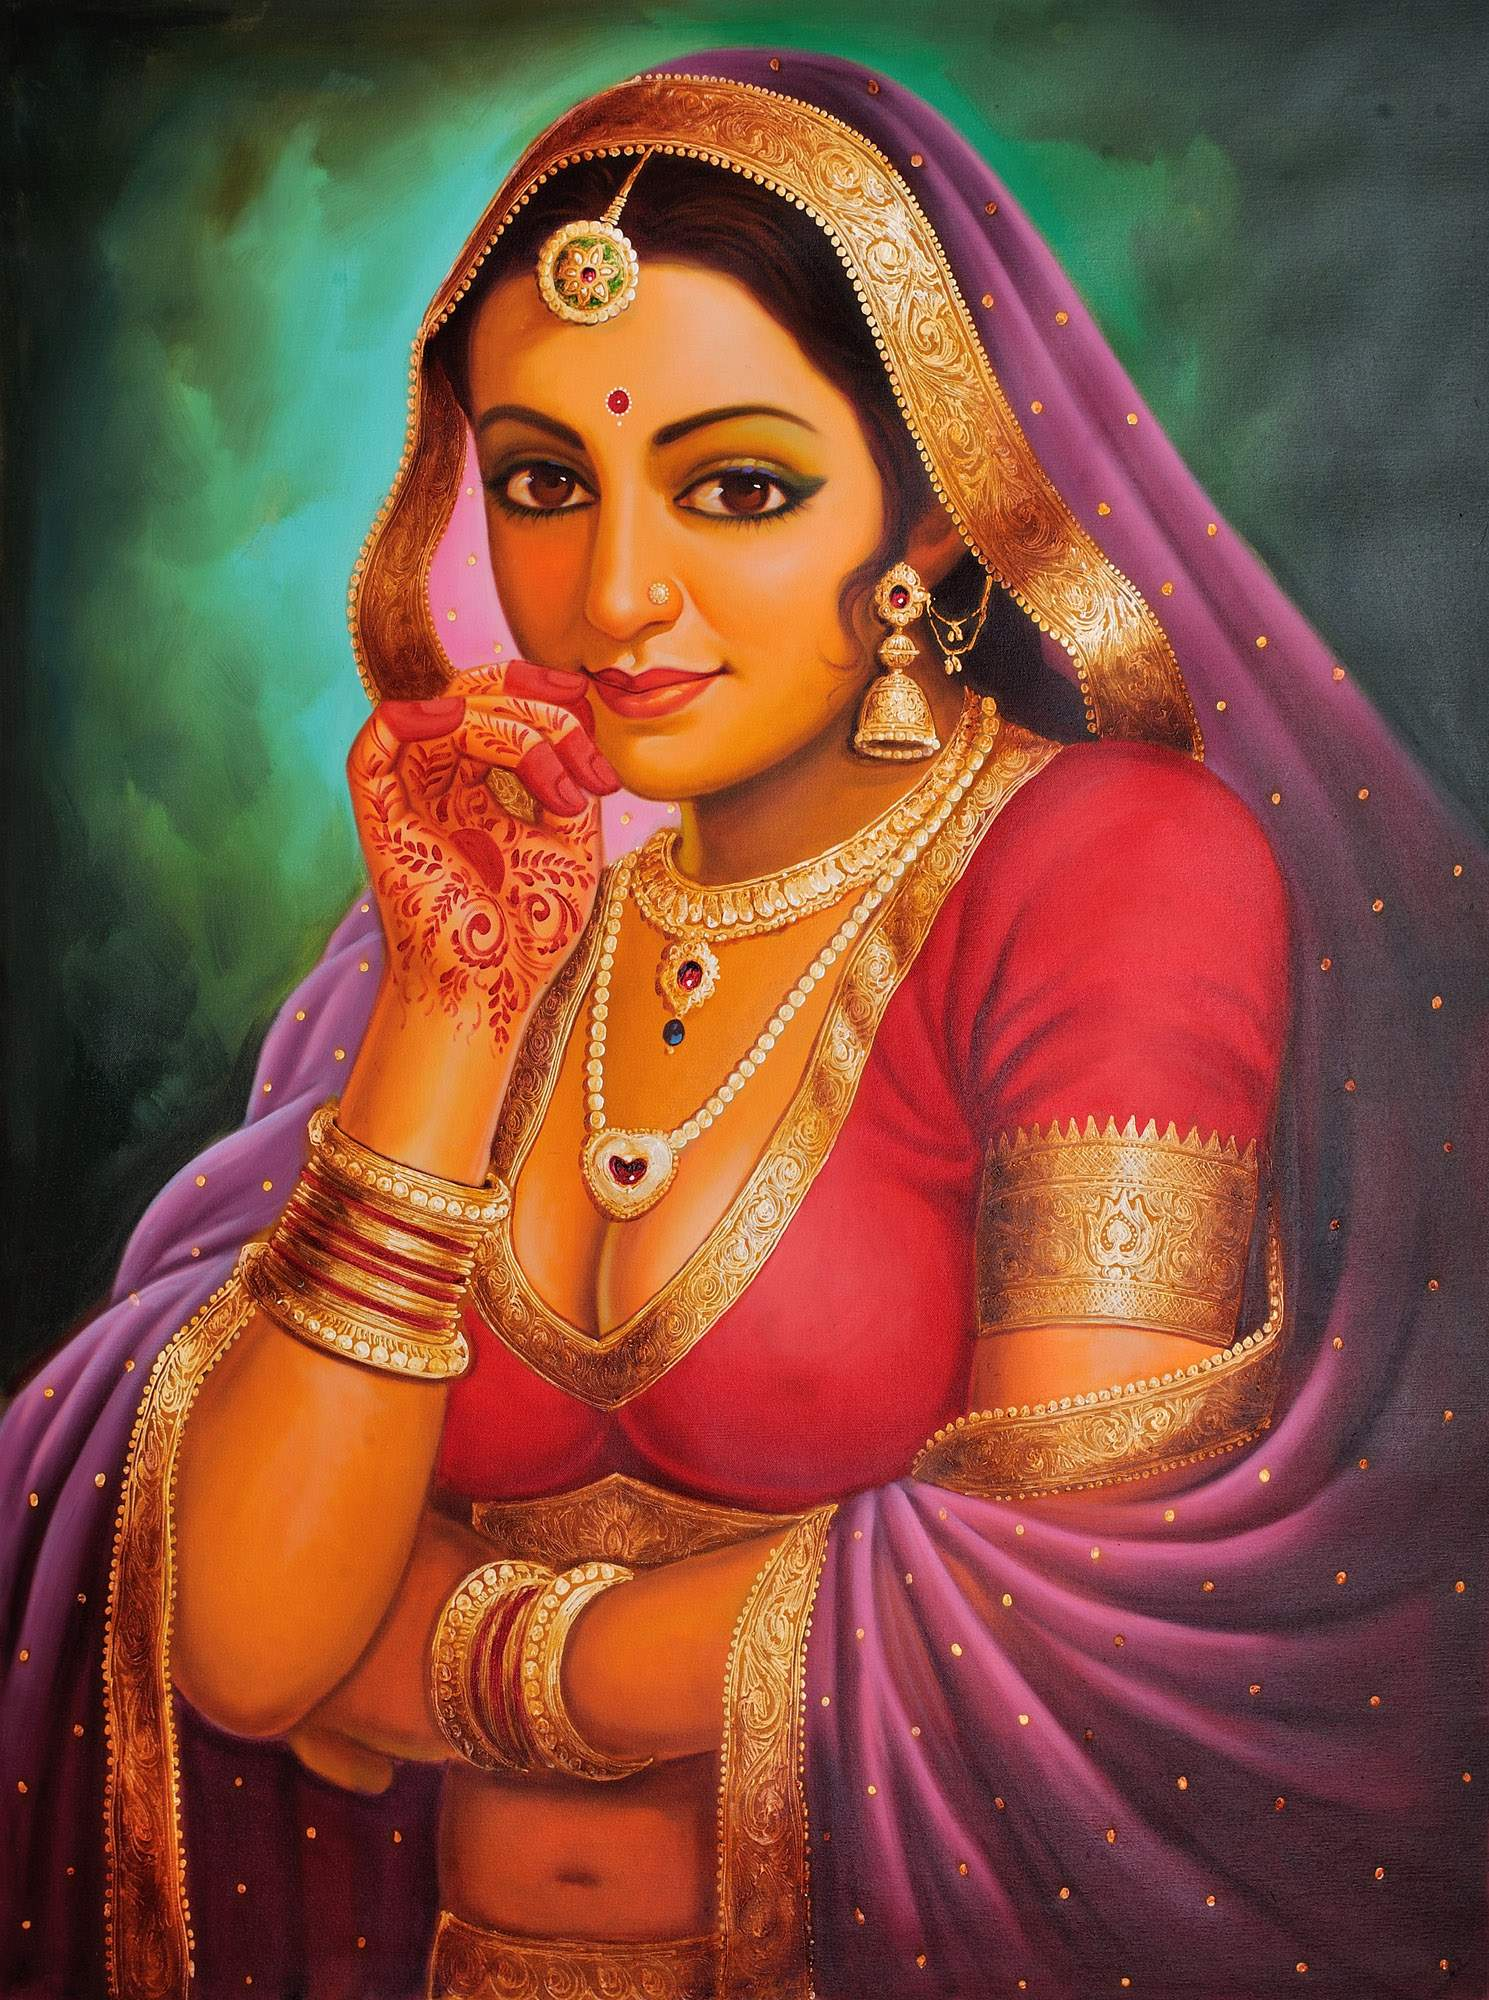 Paintings gt oils gt portrait of a rajasthani bride